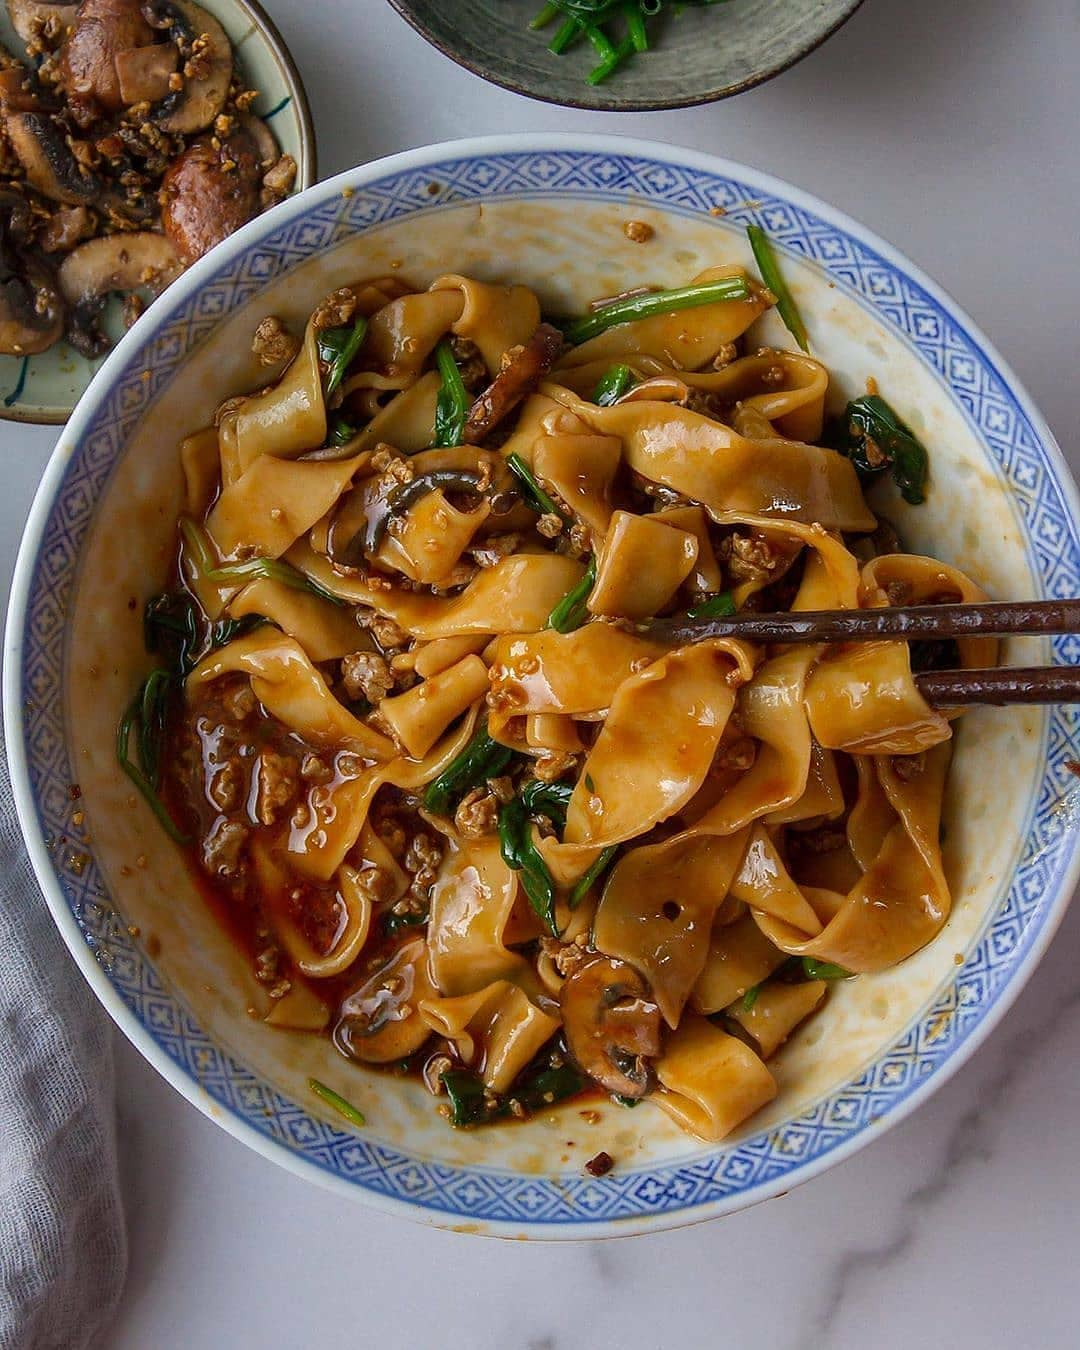 saucy homemade noodles bowl by woonheng display image  f6d2d13f